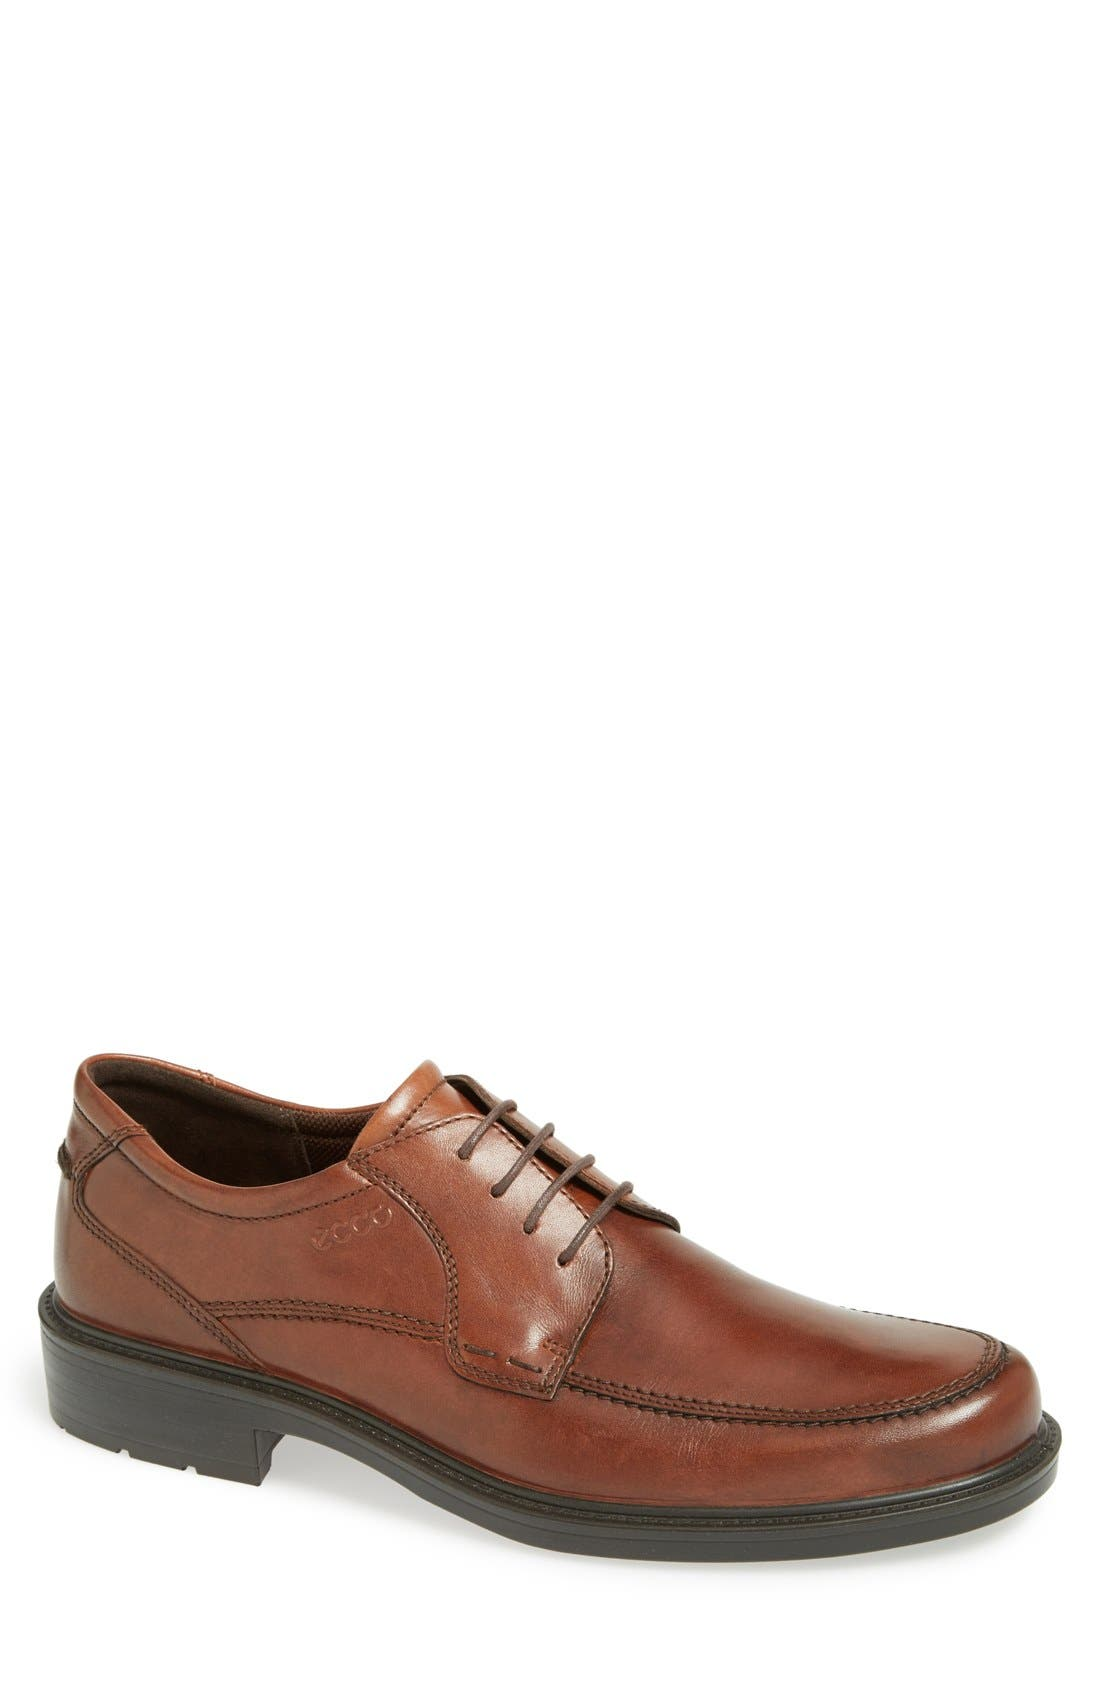 Main Image - ECCO 'Boston' Oxford (Men)